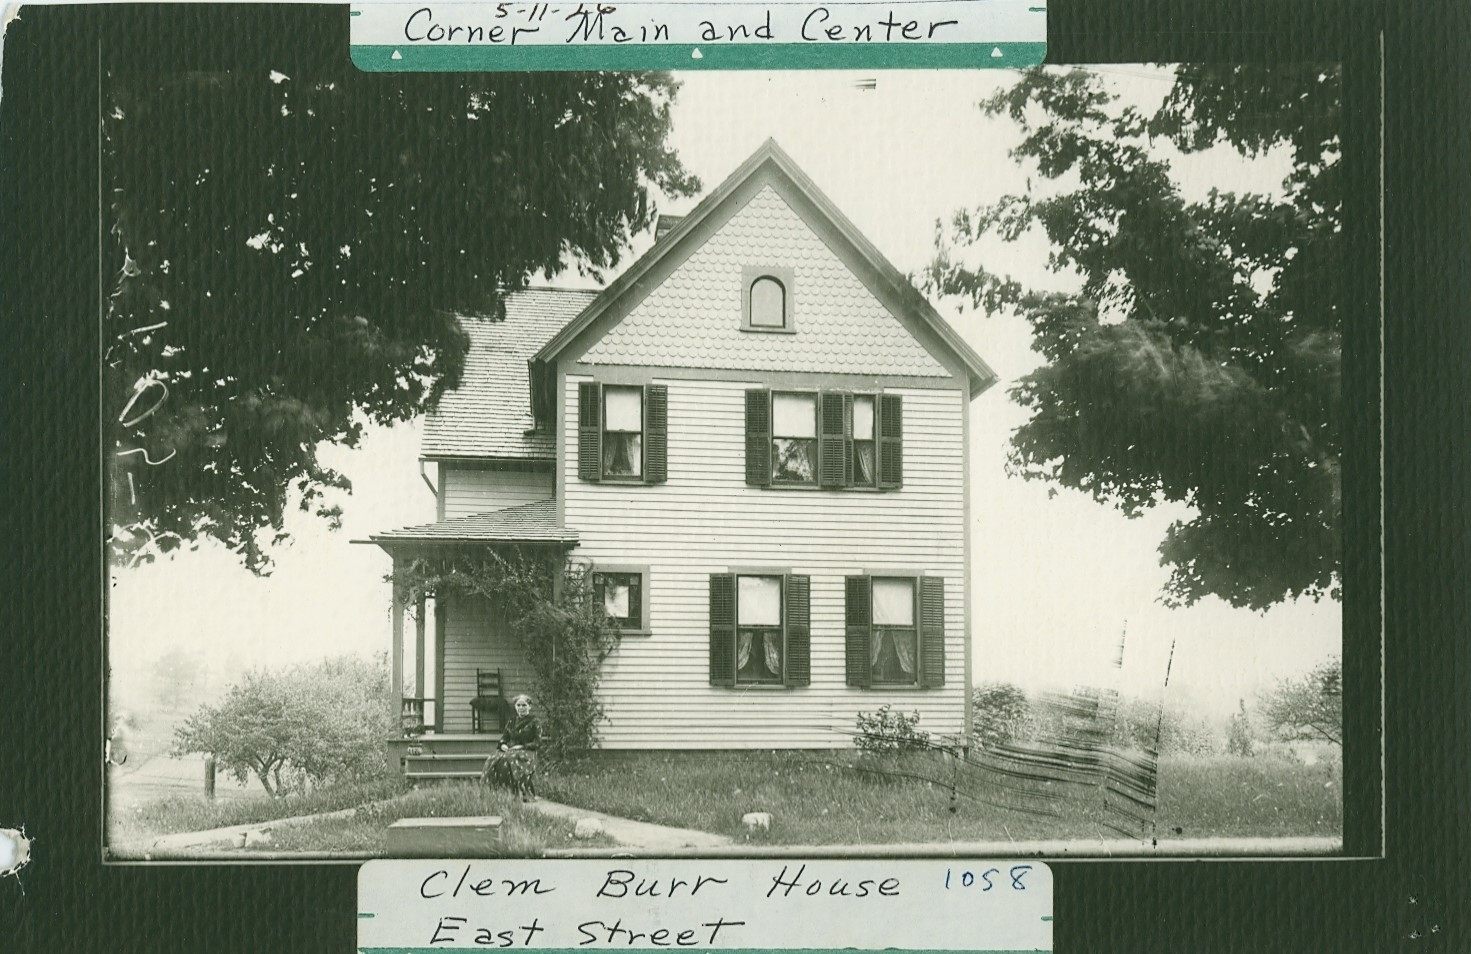 Clement R. and Mary Burr - East St.